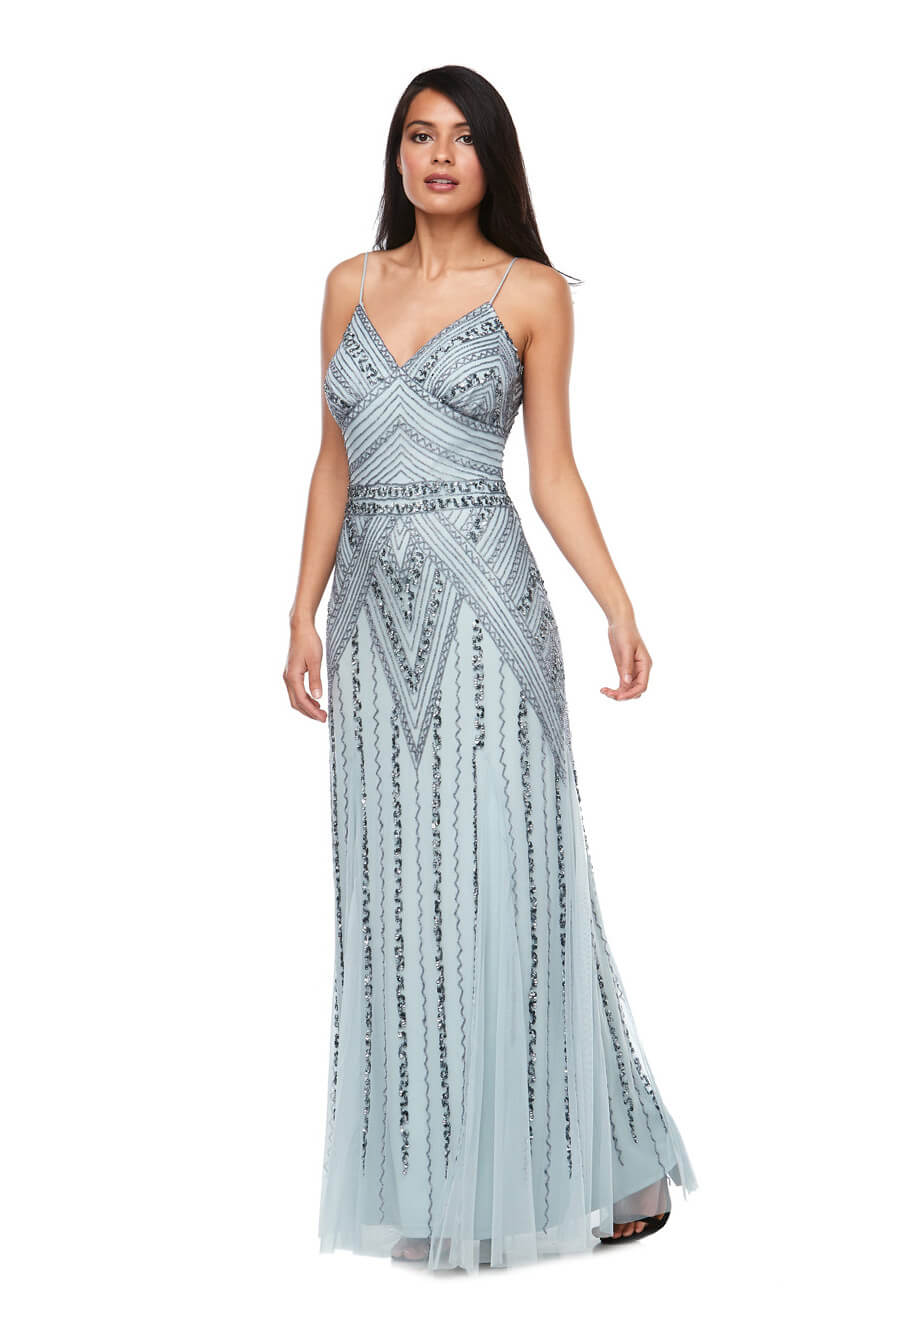 Long chiffon beaded gown with thin spaghetti straps & fishtail skirt